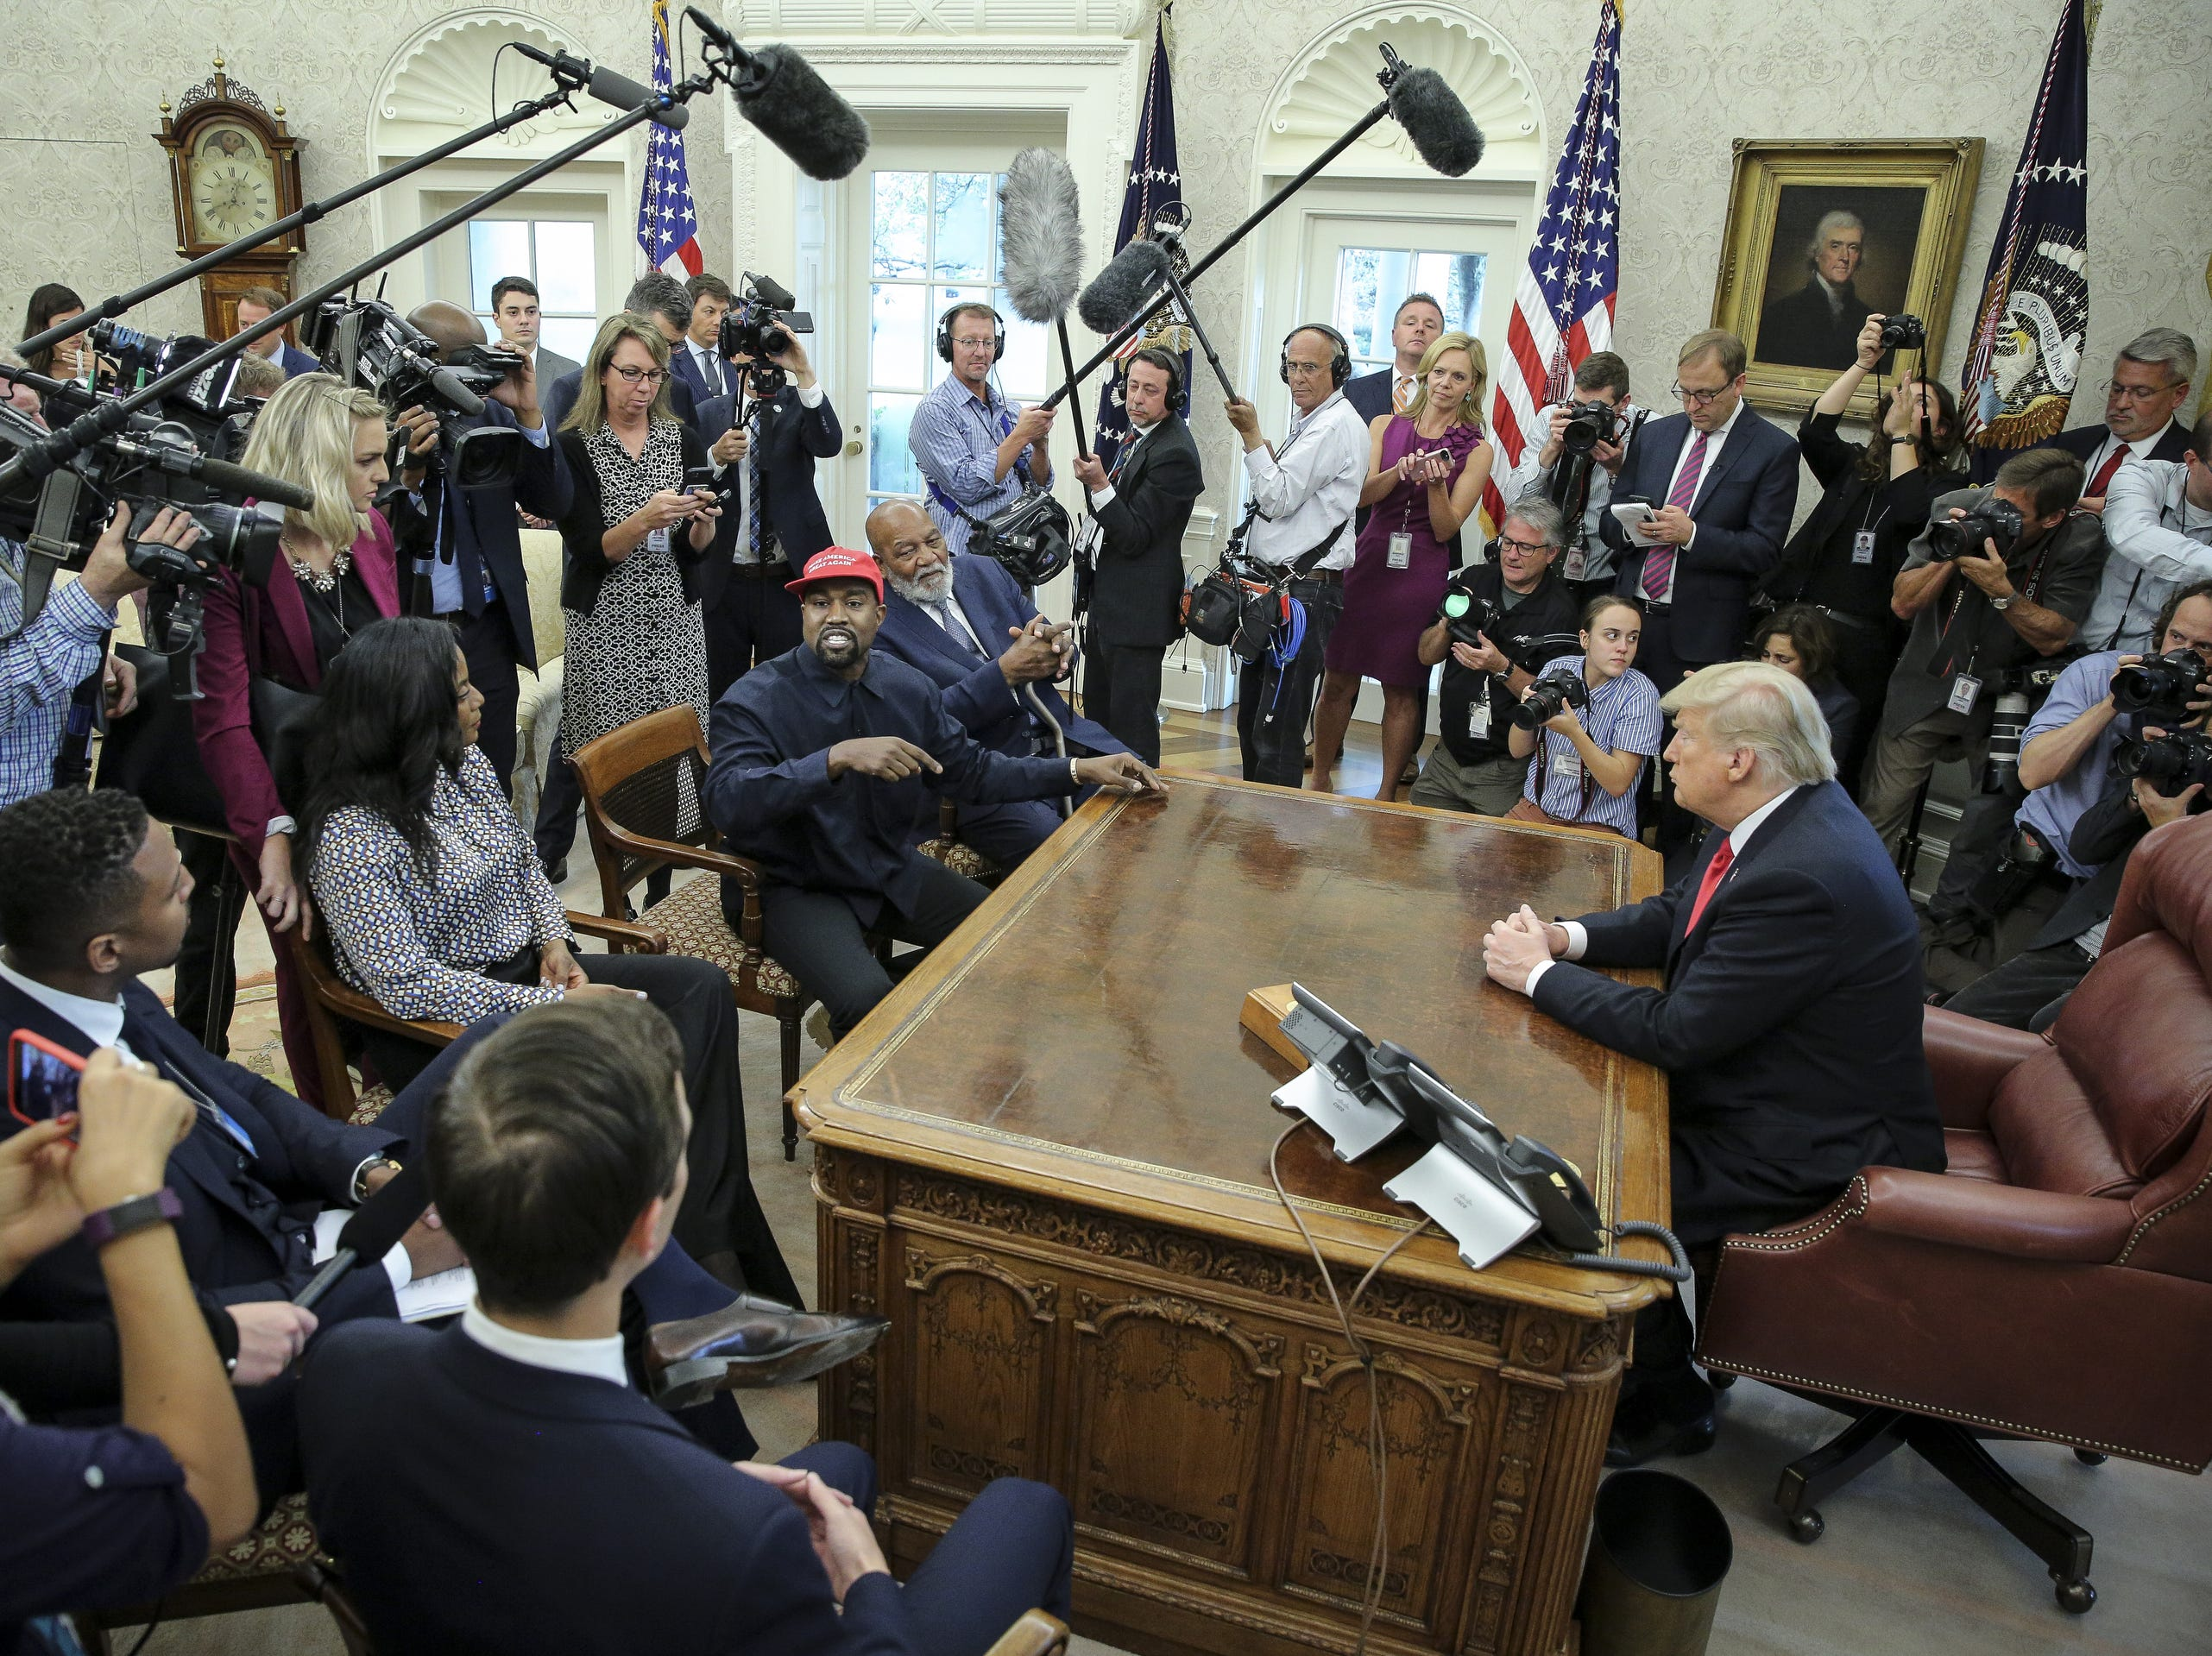 Rapper Kanye West, center, speaks during a meeting with President Donald Trump in the Oval office of the White House.  Former football great Jim Brown sits to the left of West.